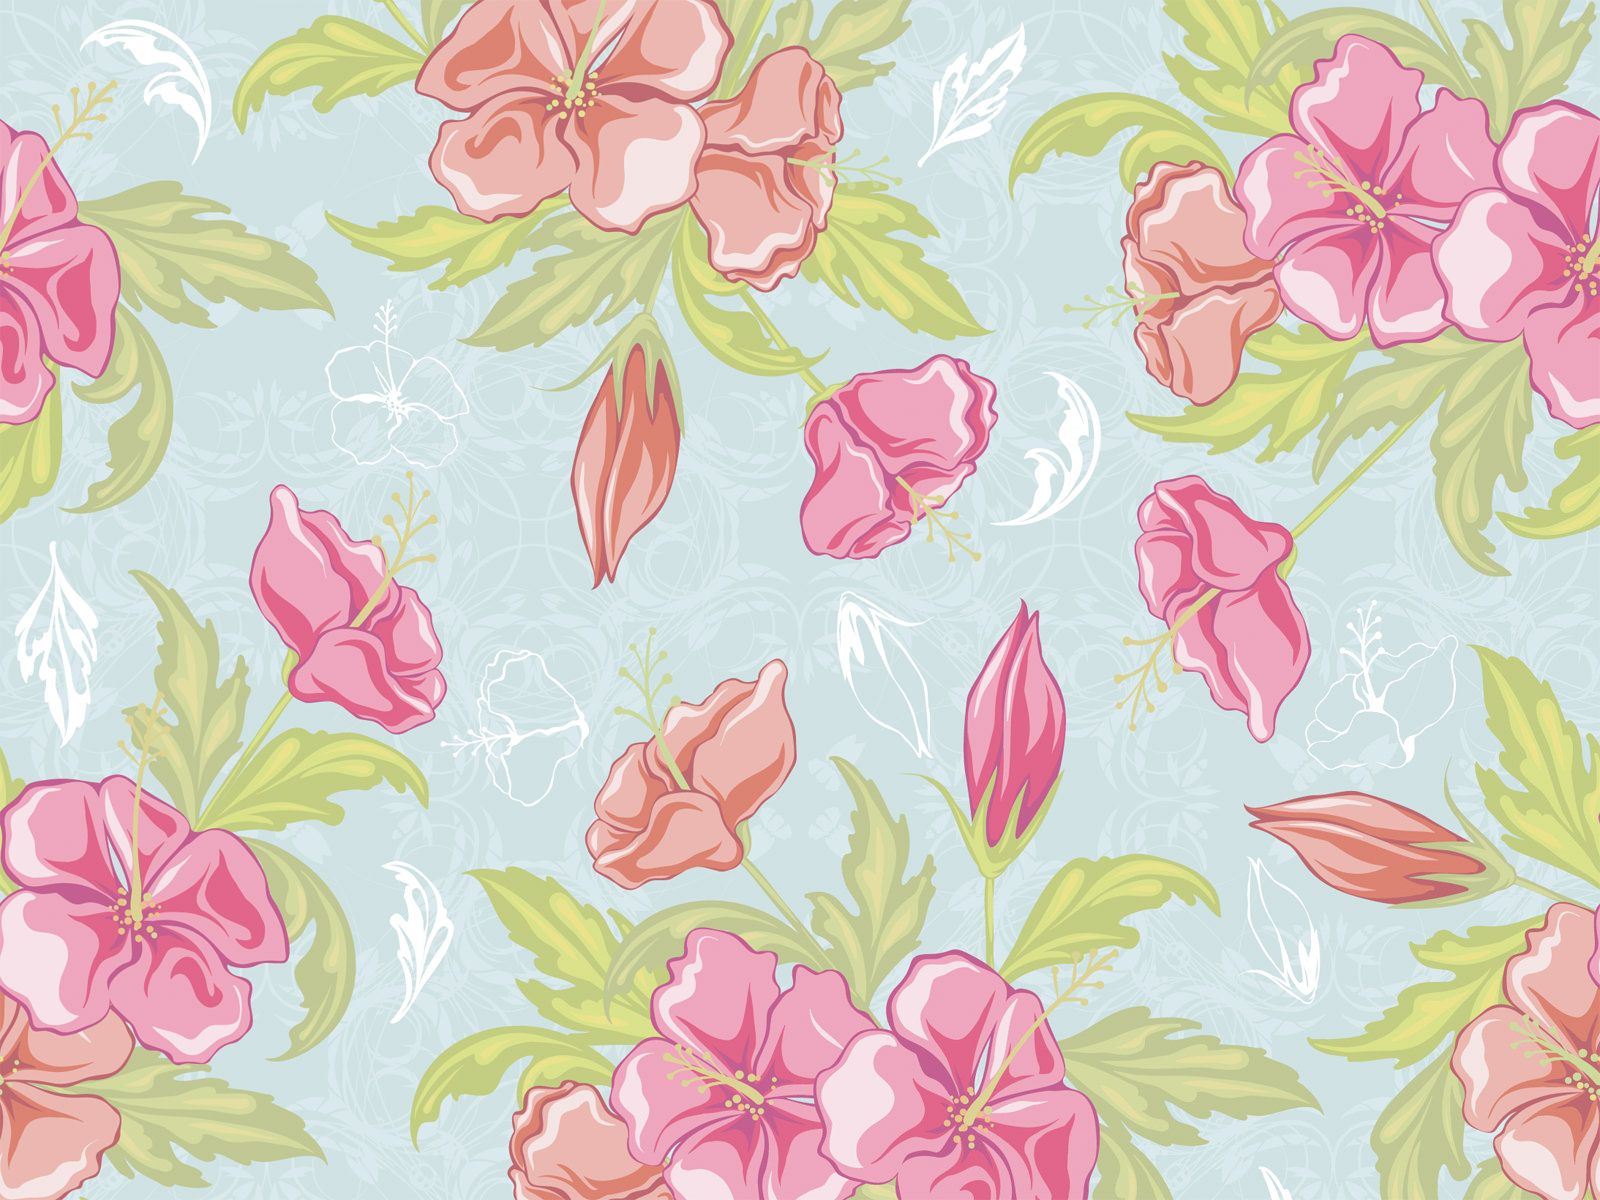 Free Download Download Classic Floral Vintage Design Wallpaper